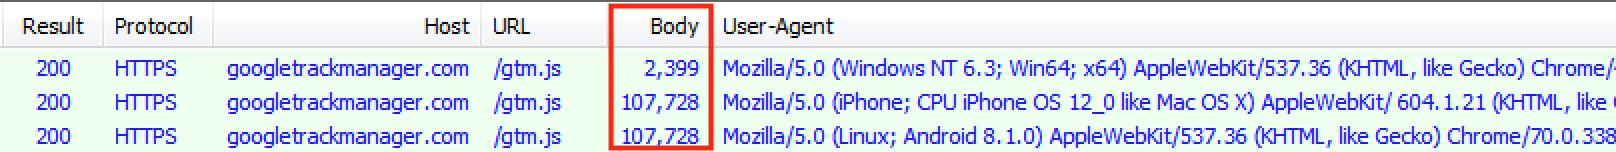 Figure 3. The different scripts downloaded from the skimmer URL for desktop and mobile